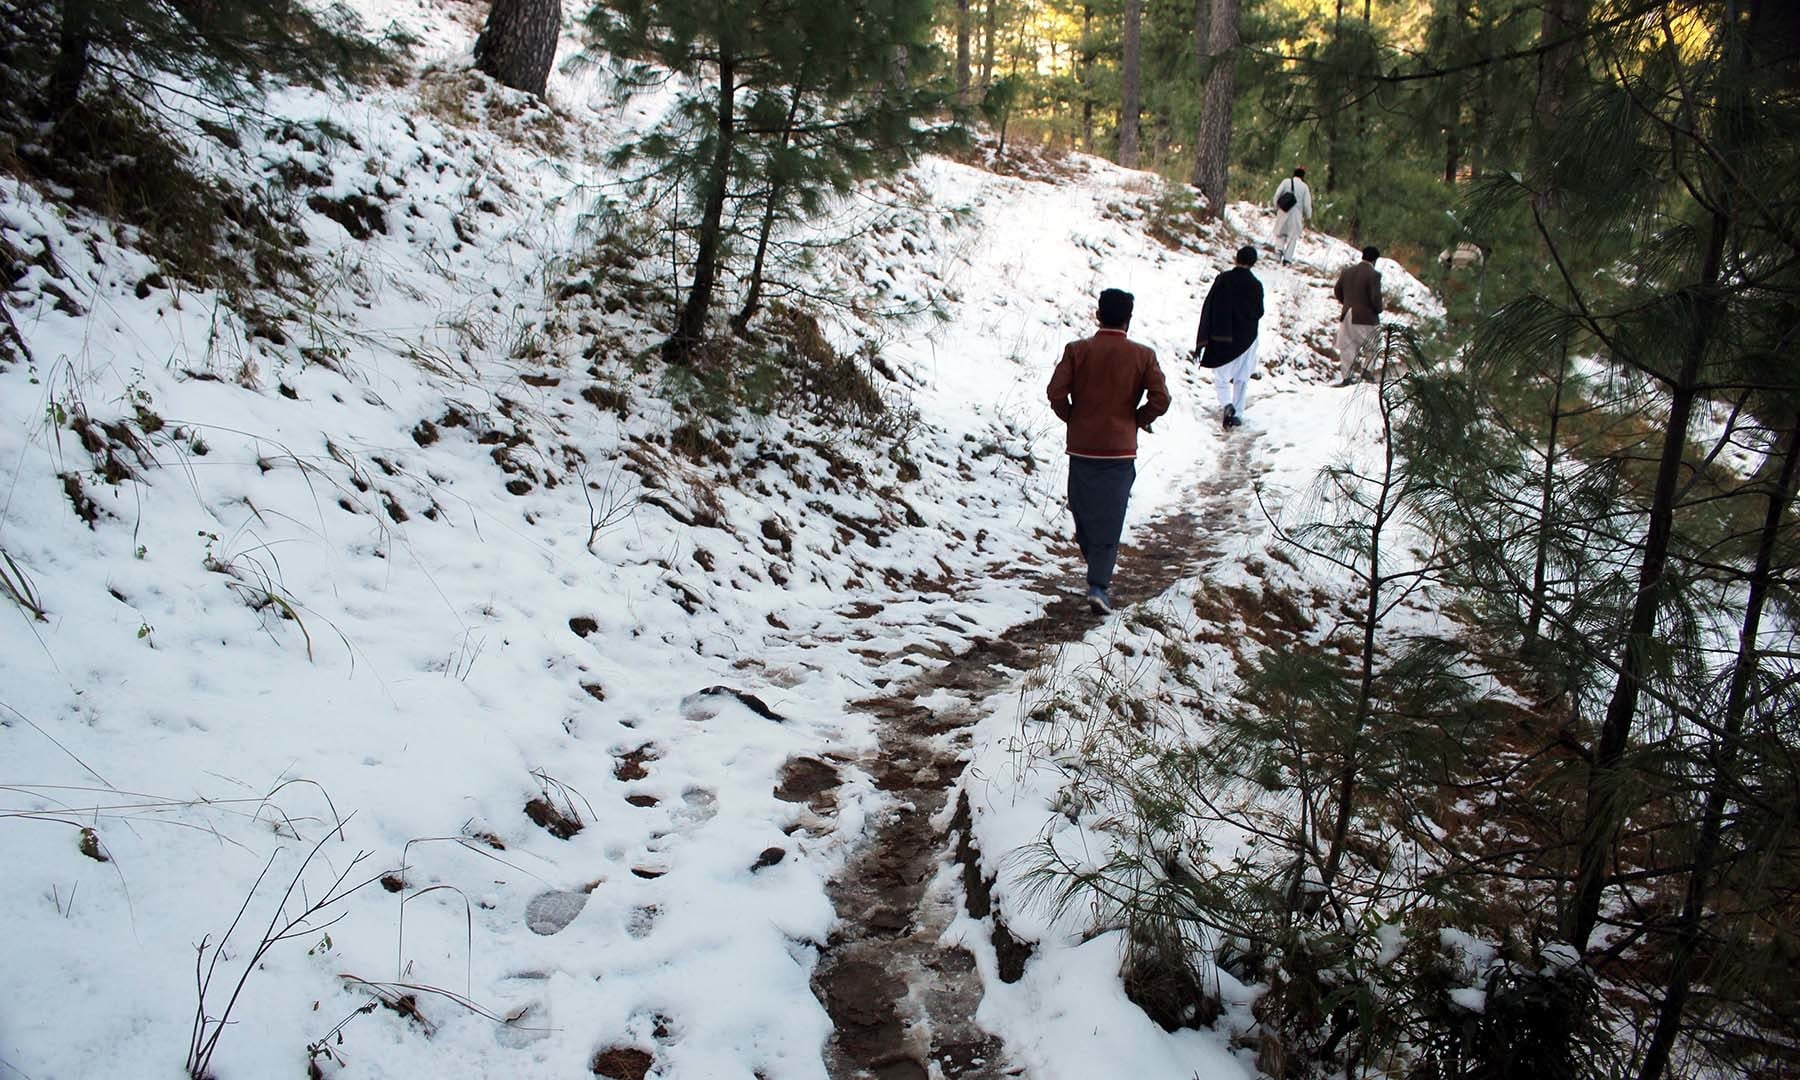 Winding paths within a forest teeming with pine trees lead to Jenako Maidan.